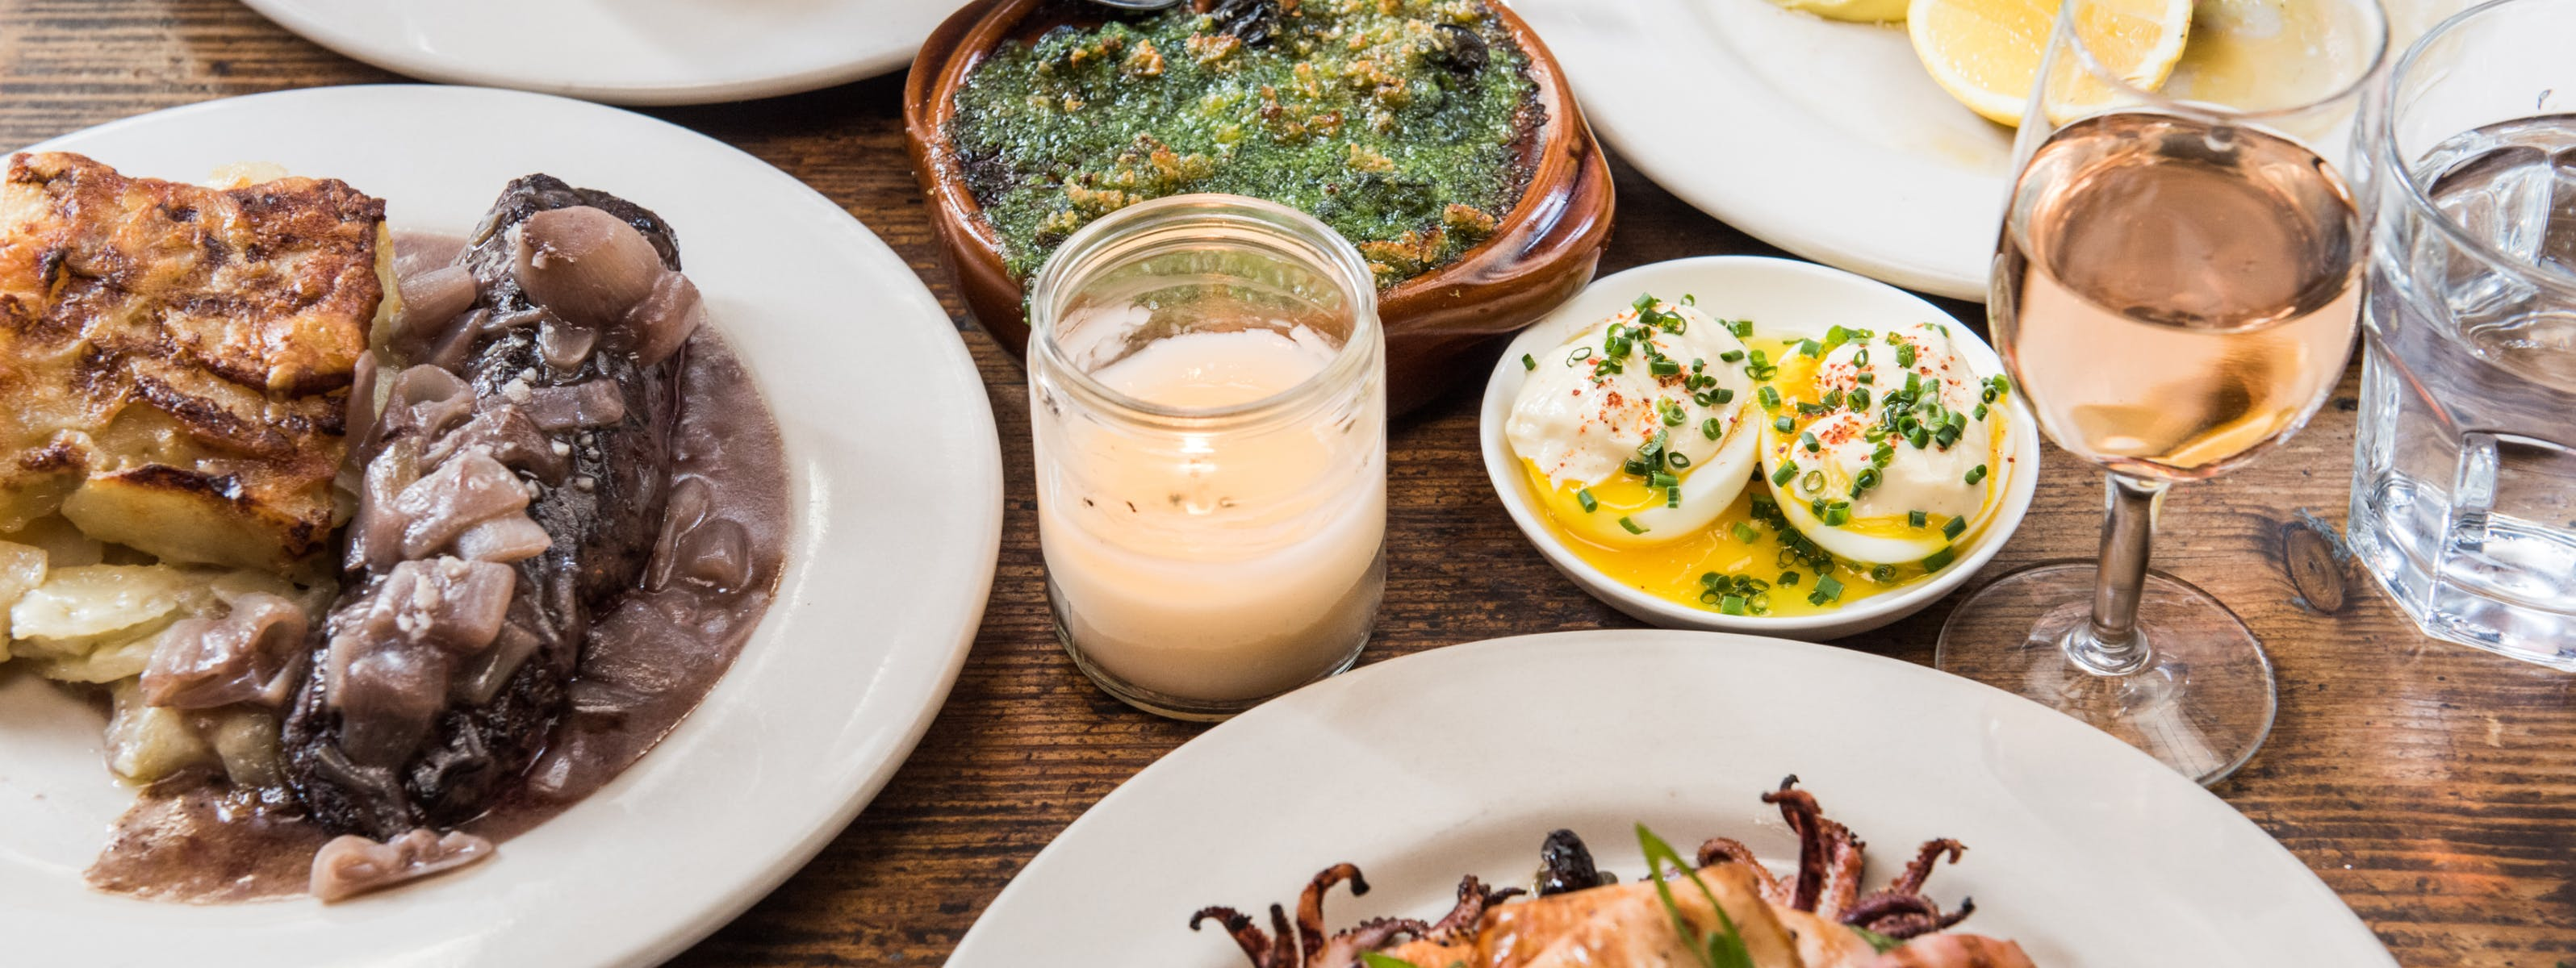 The Best Outdoor Restaurants On The Lower East Side - Lower East Side - New York - The Infatuation